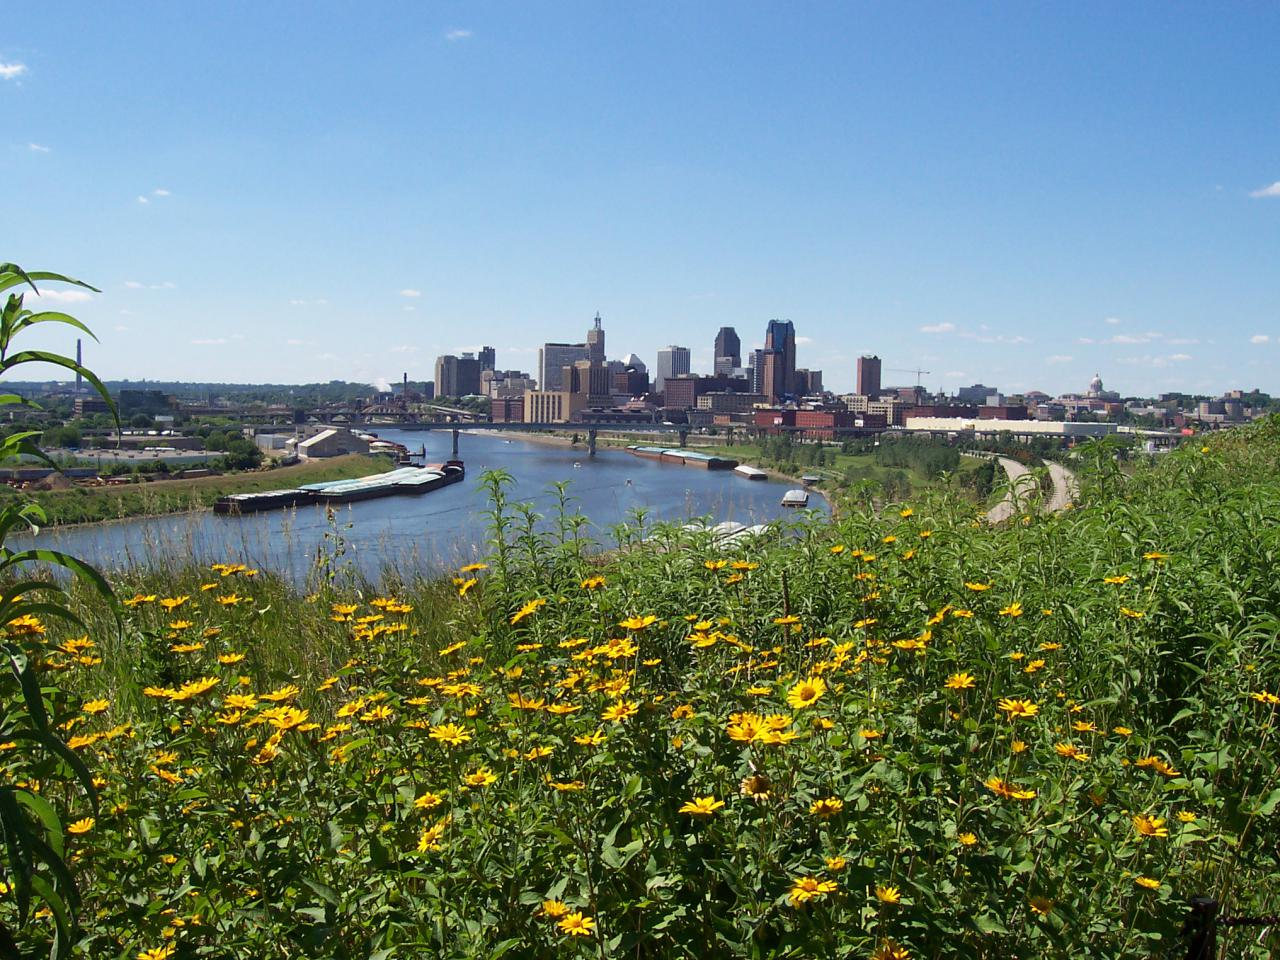 Native prairie installed by volunteers at Indian Mounds Park